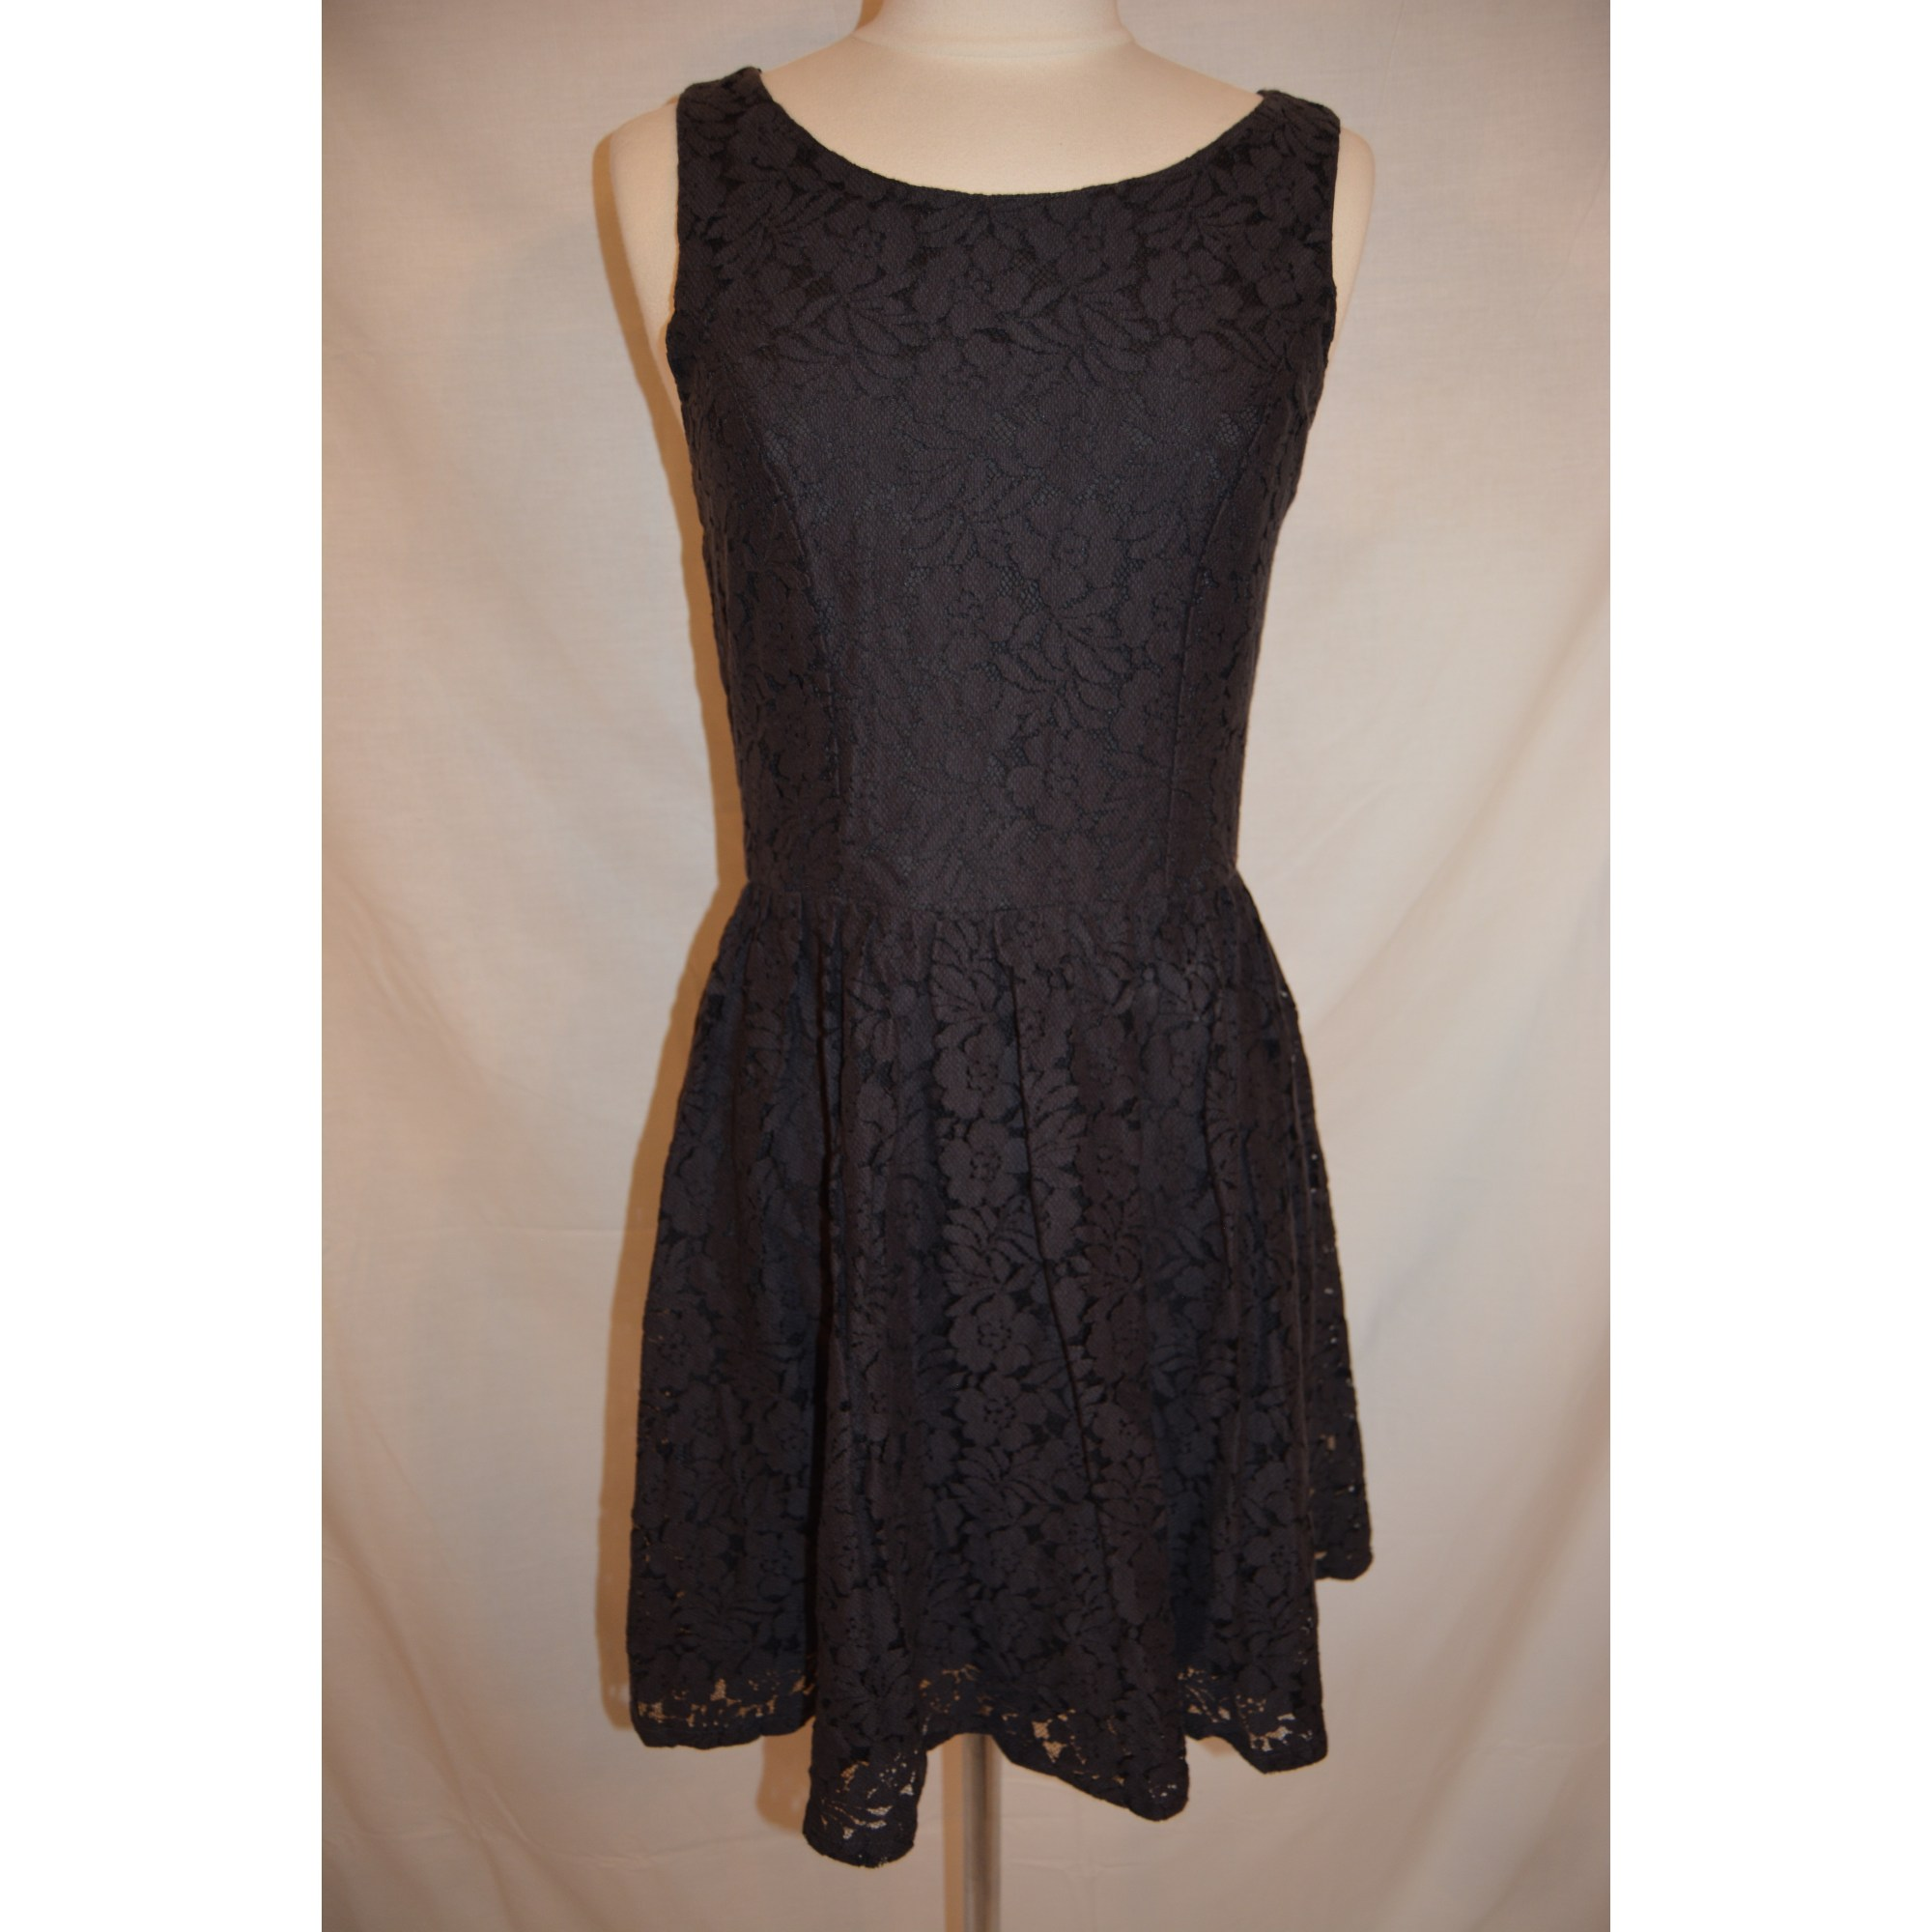 Robe courte ONLY Gris, anthracite